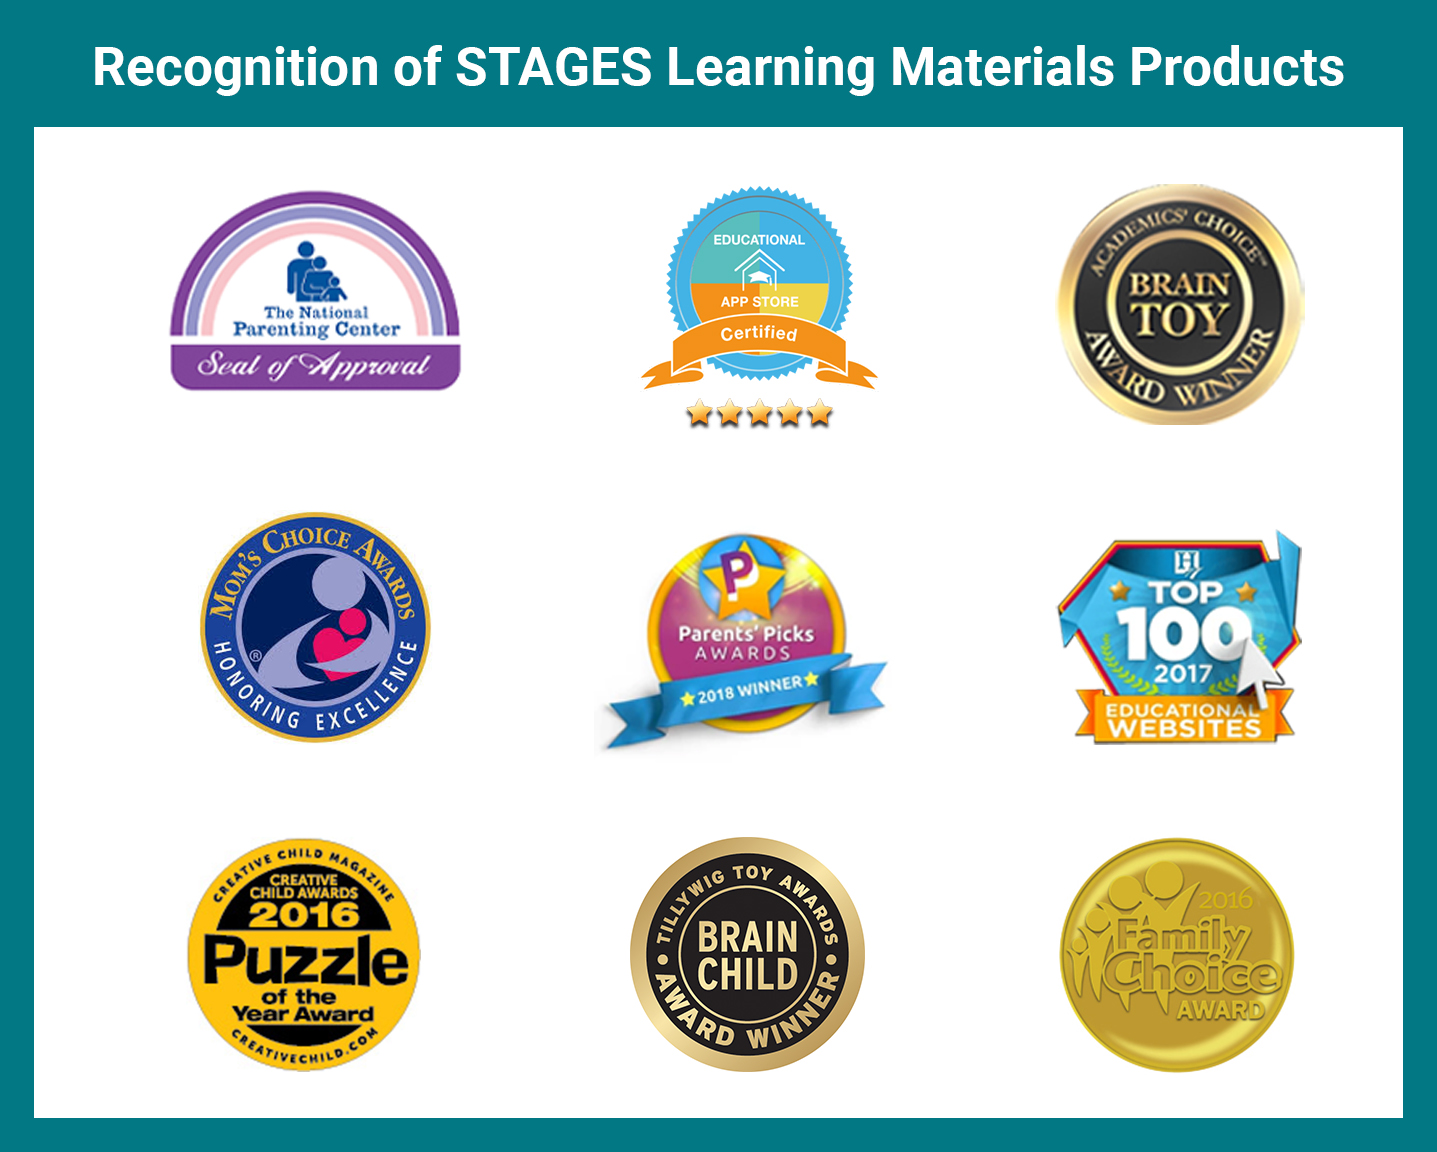 Recognition of STAGES Learning Materials Products